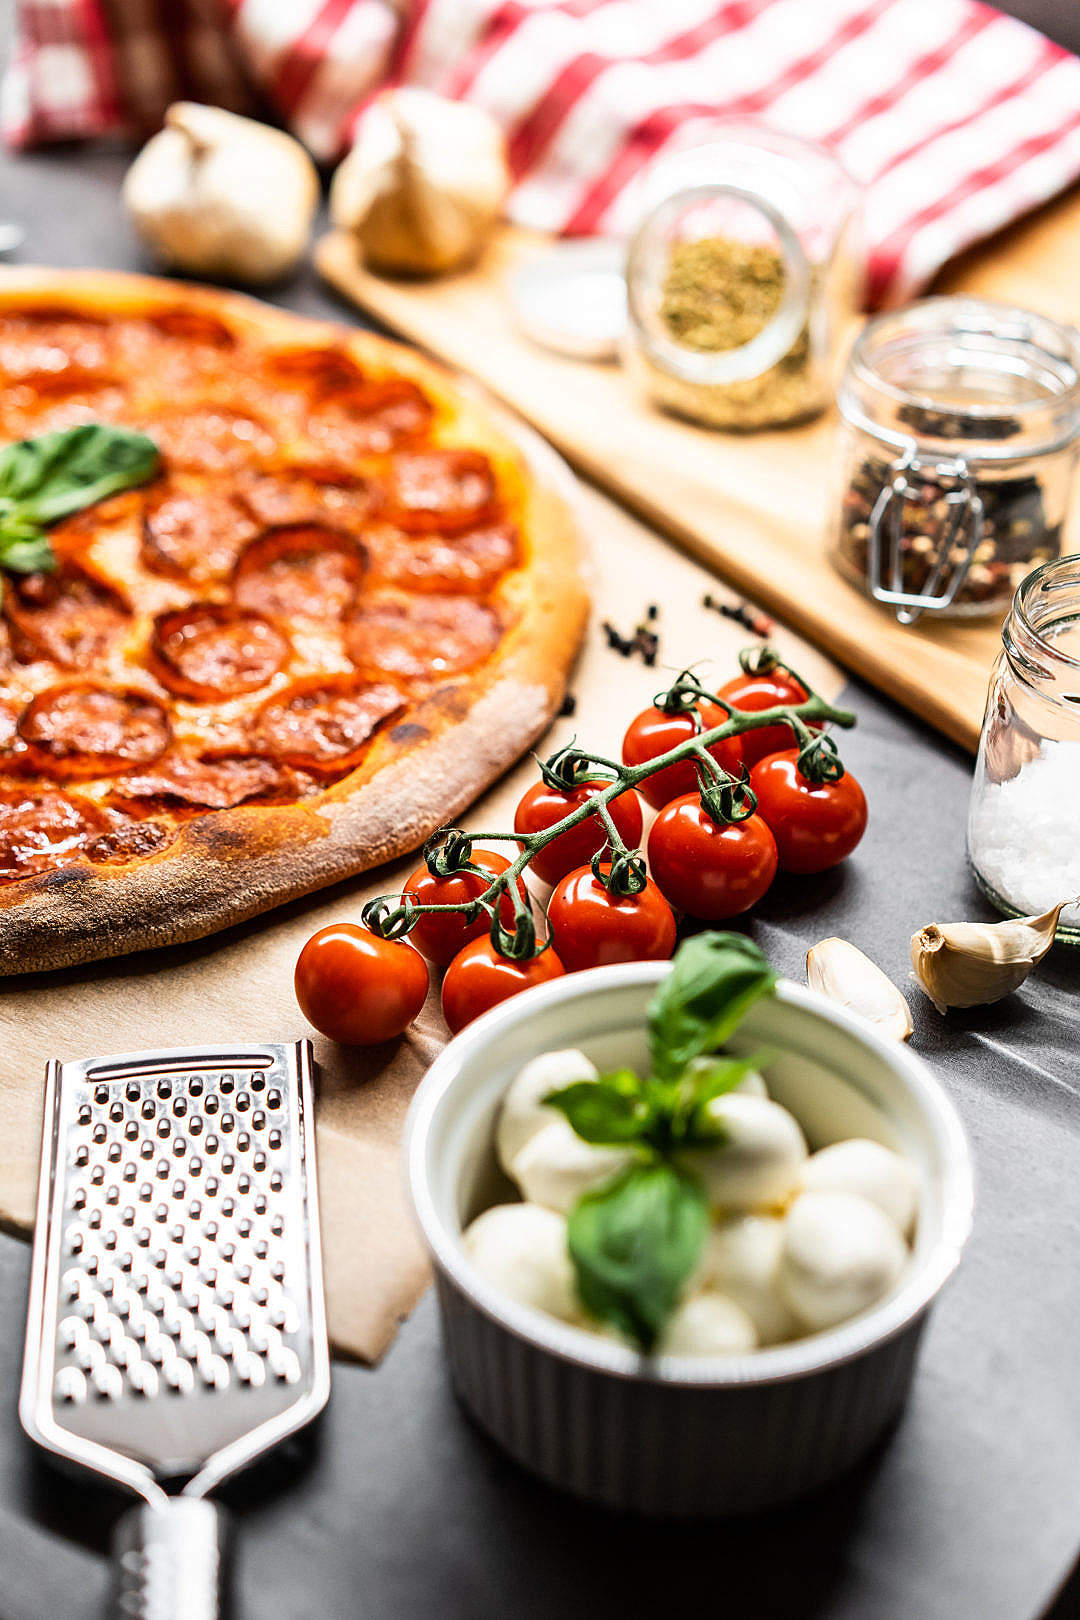 Download Cherry Tomatoes and Pizza Salami FREE Stock Photo